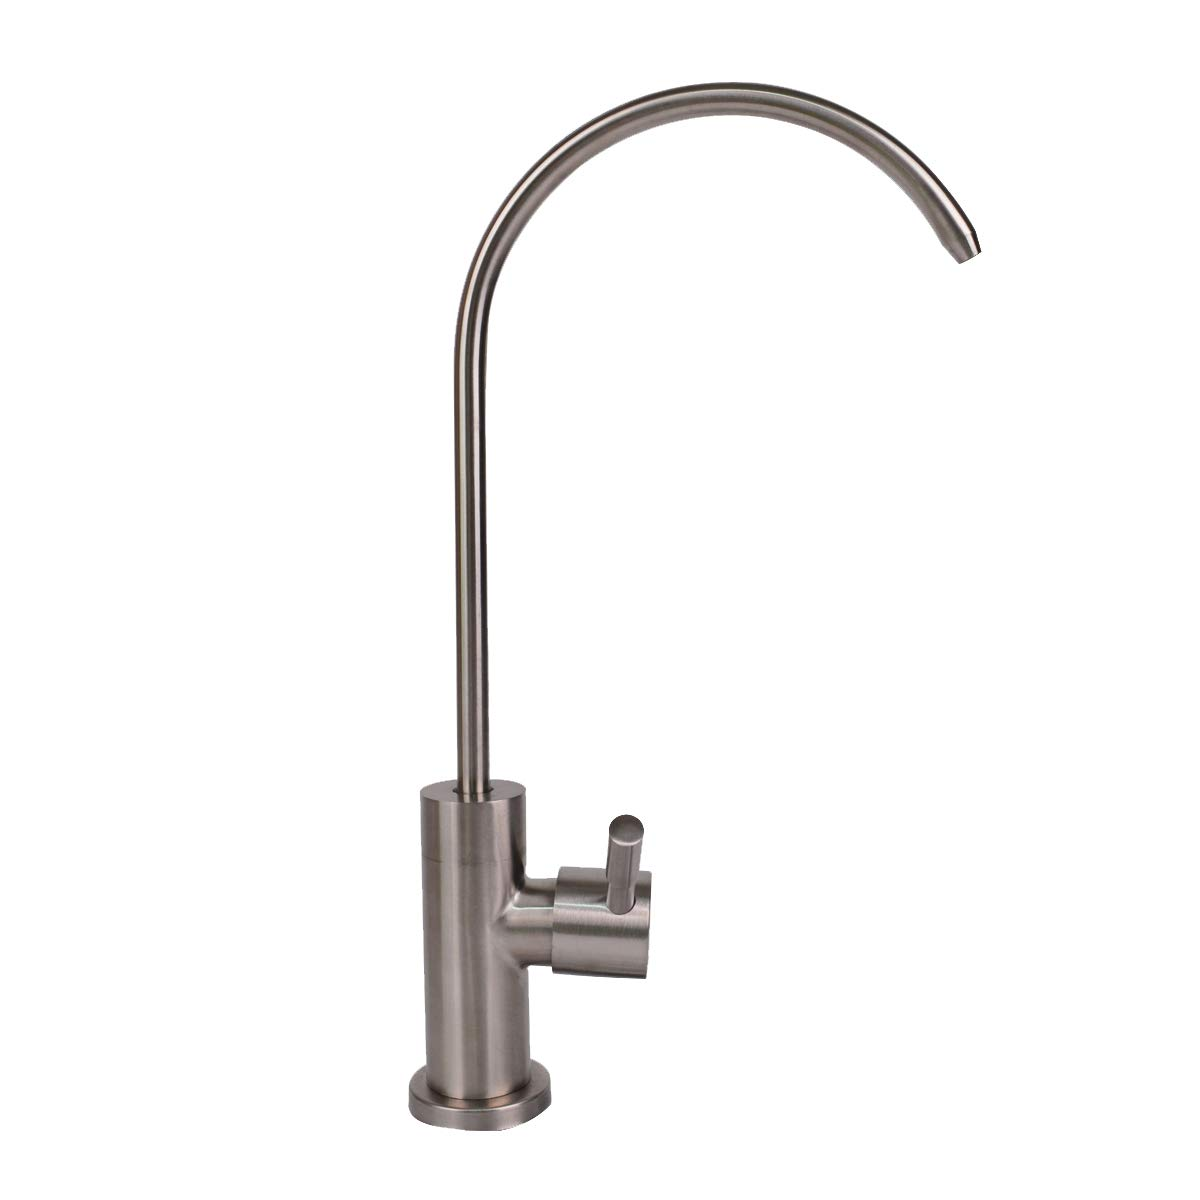 Baitaihem Drinking Water Faucet, Cold Water Filter Faucet, Stainless Steel Kitchen Sink Reverse Osmosis Filter, Beverage Water Filtration Faucet Brushed Nickel